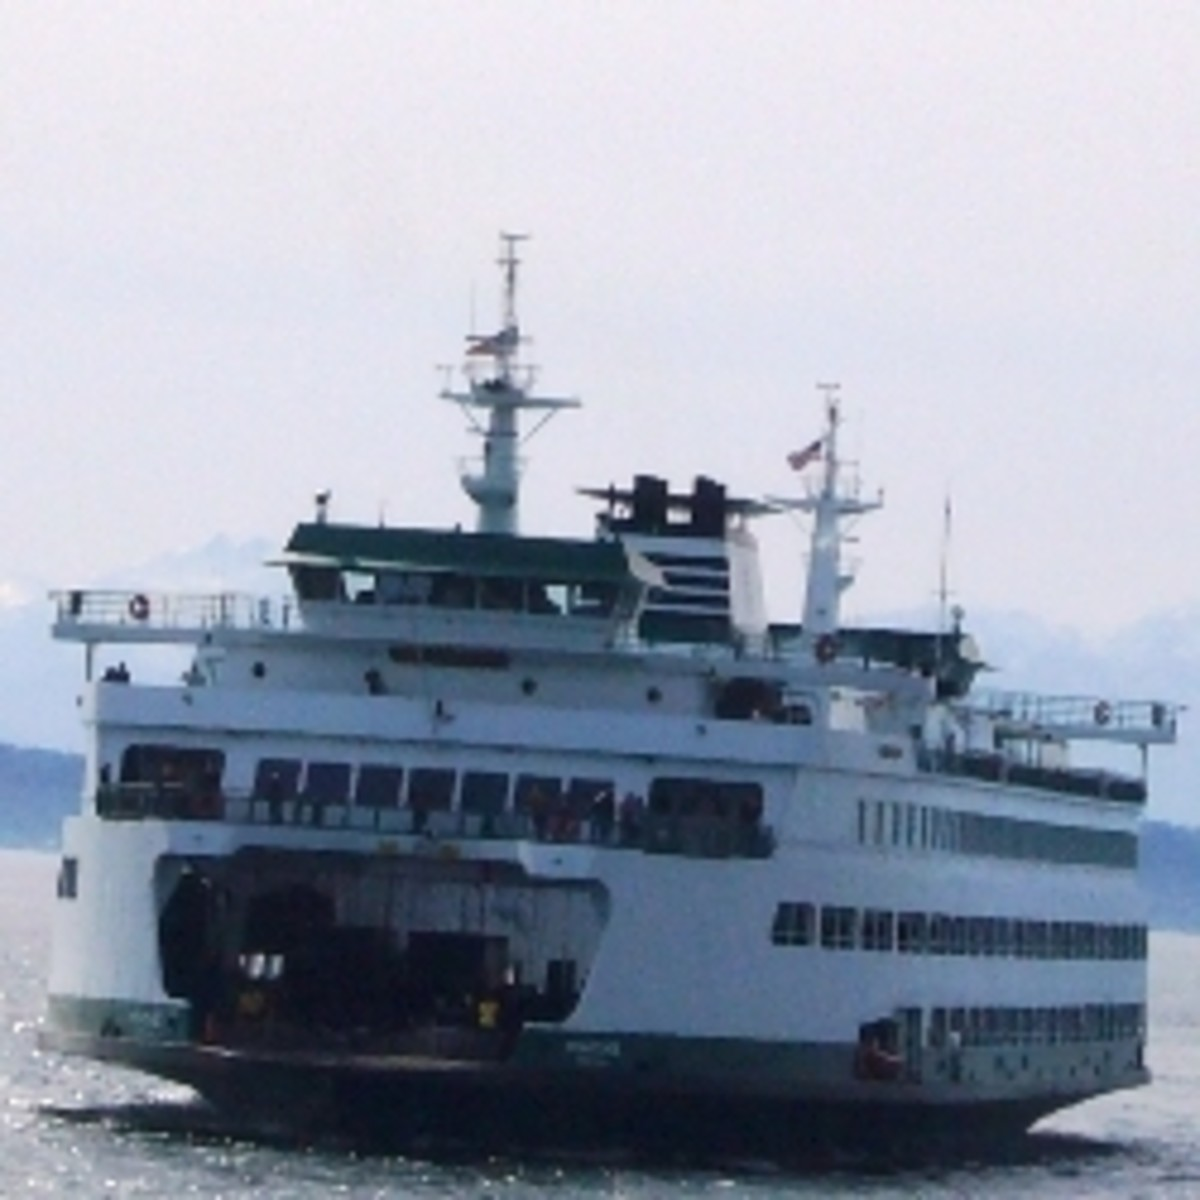 The Seattle to Bainbridge Island Ferry